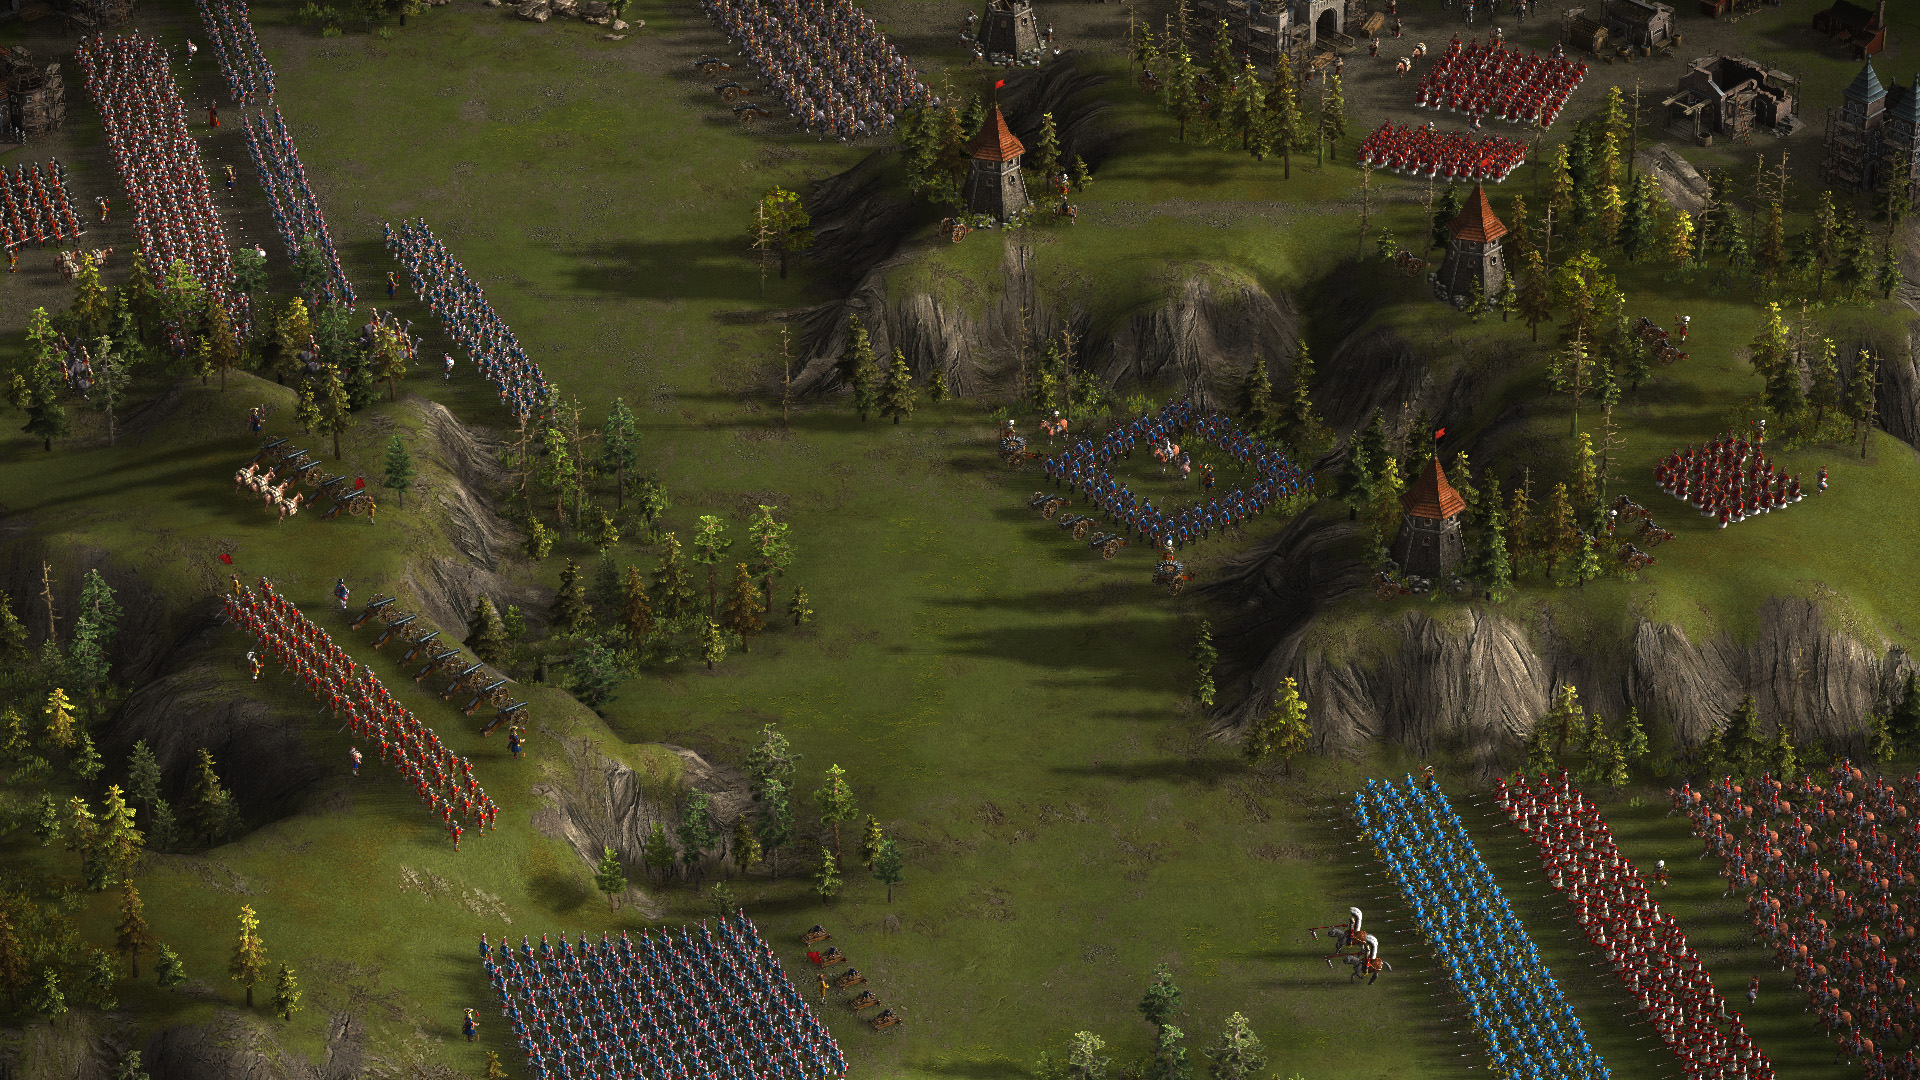 GSC Game World: Cossacks 3 statt Stalker - Cossacks 3 (Bild: GSC Game World)